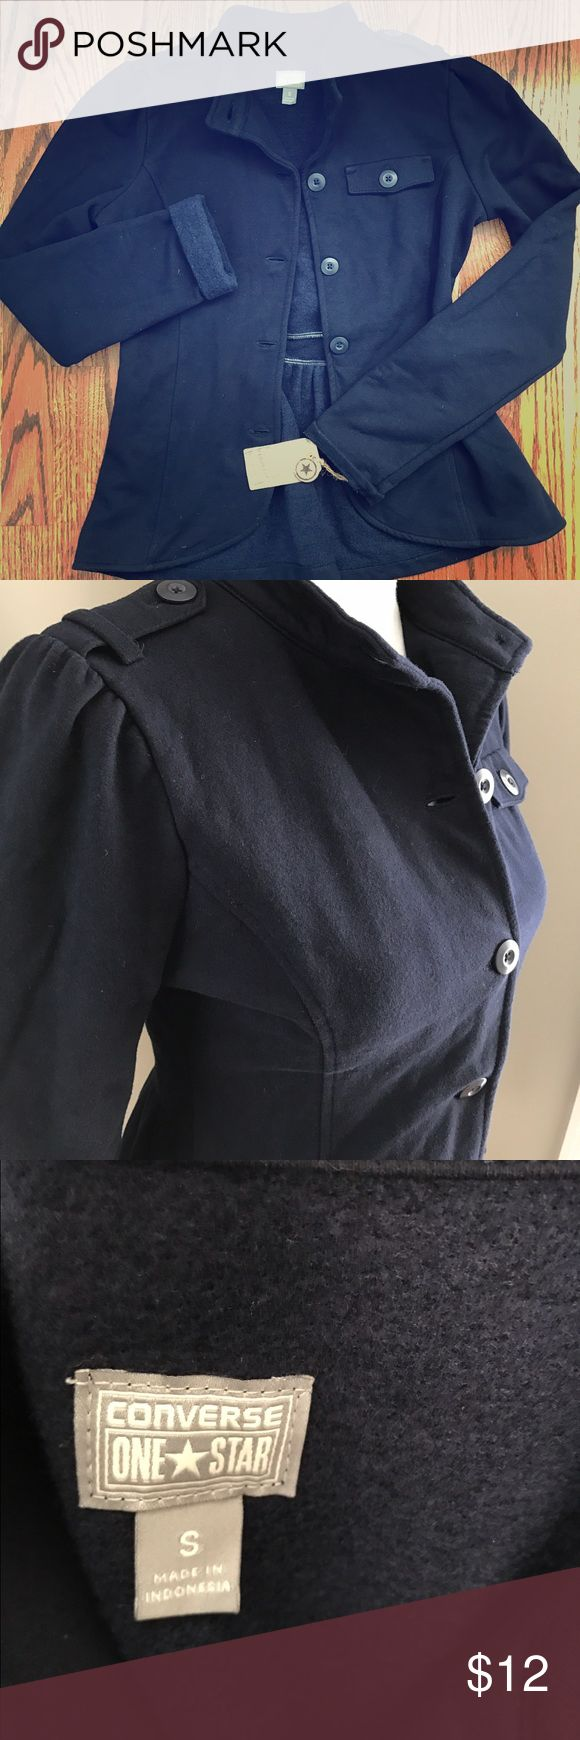 NWT Converse one star navy fleece jacket Sz small Super cute navy fleece Converse One Star jacket. Military style. Cute Ruffle peplum back. Long sleeve. Size small. Button front. converse one star Jackets & Coats